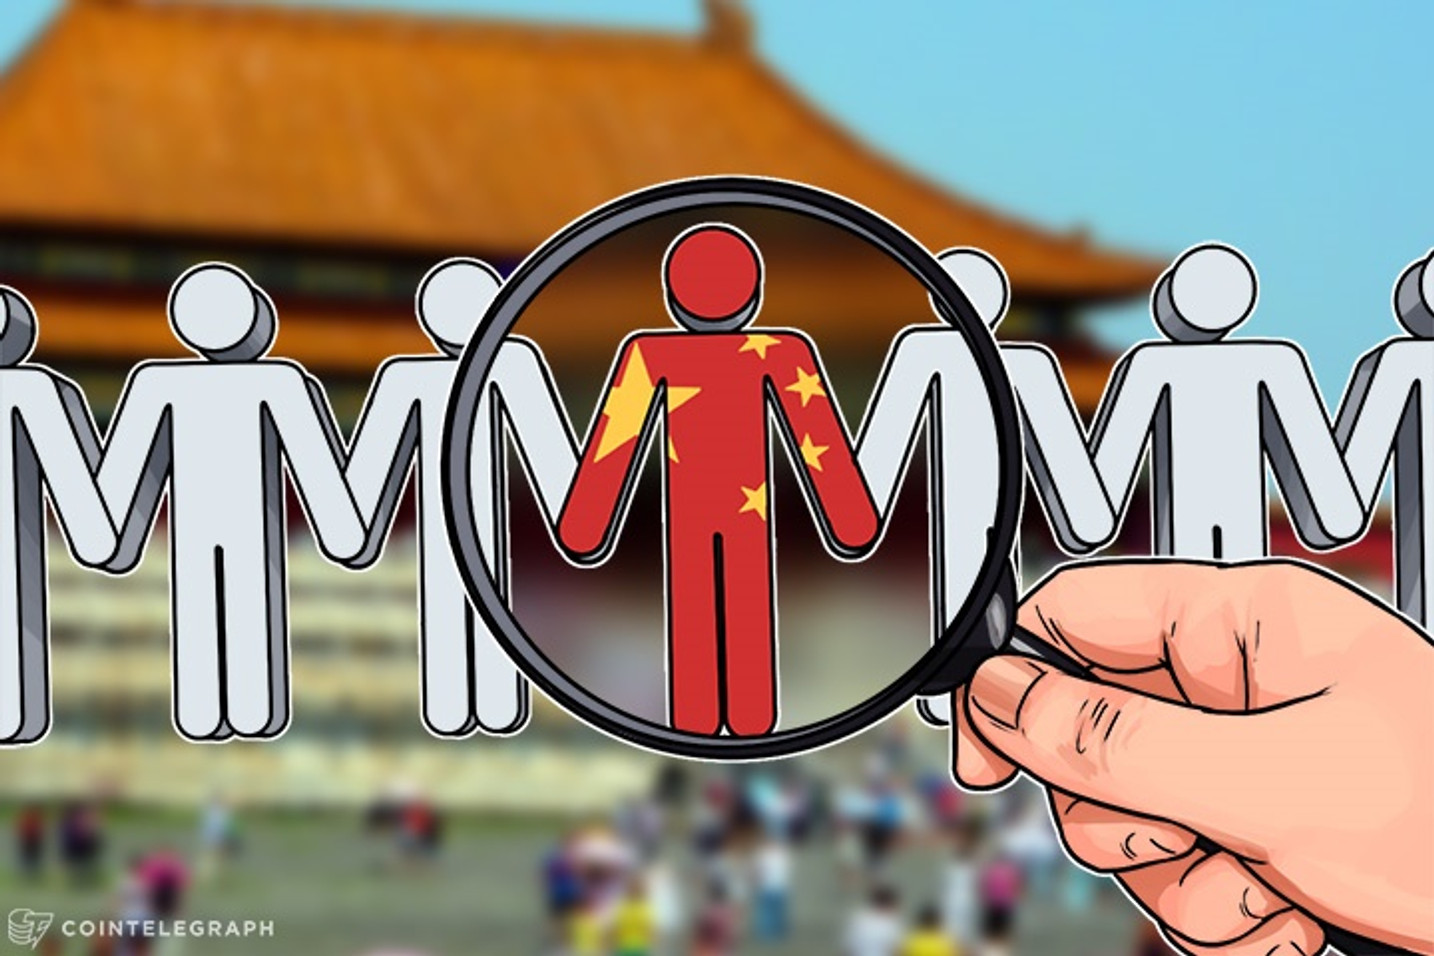 Why China's $60 Billion Alipay is Recruiting Blockchain Engineers, Experts